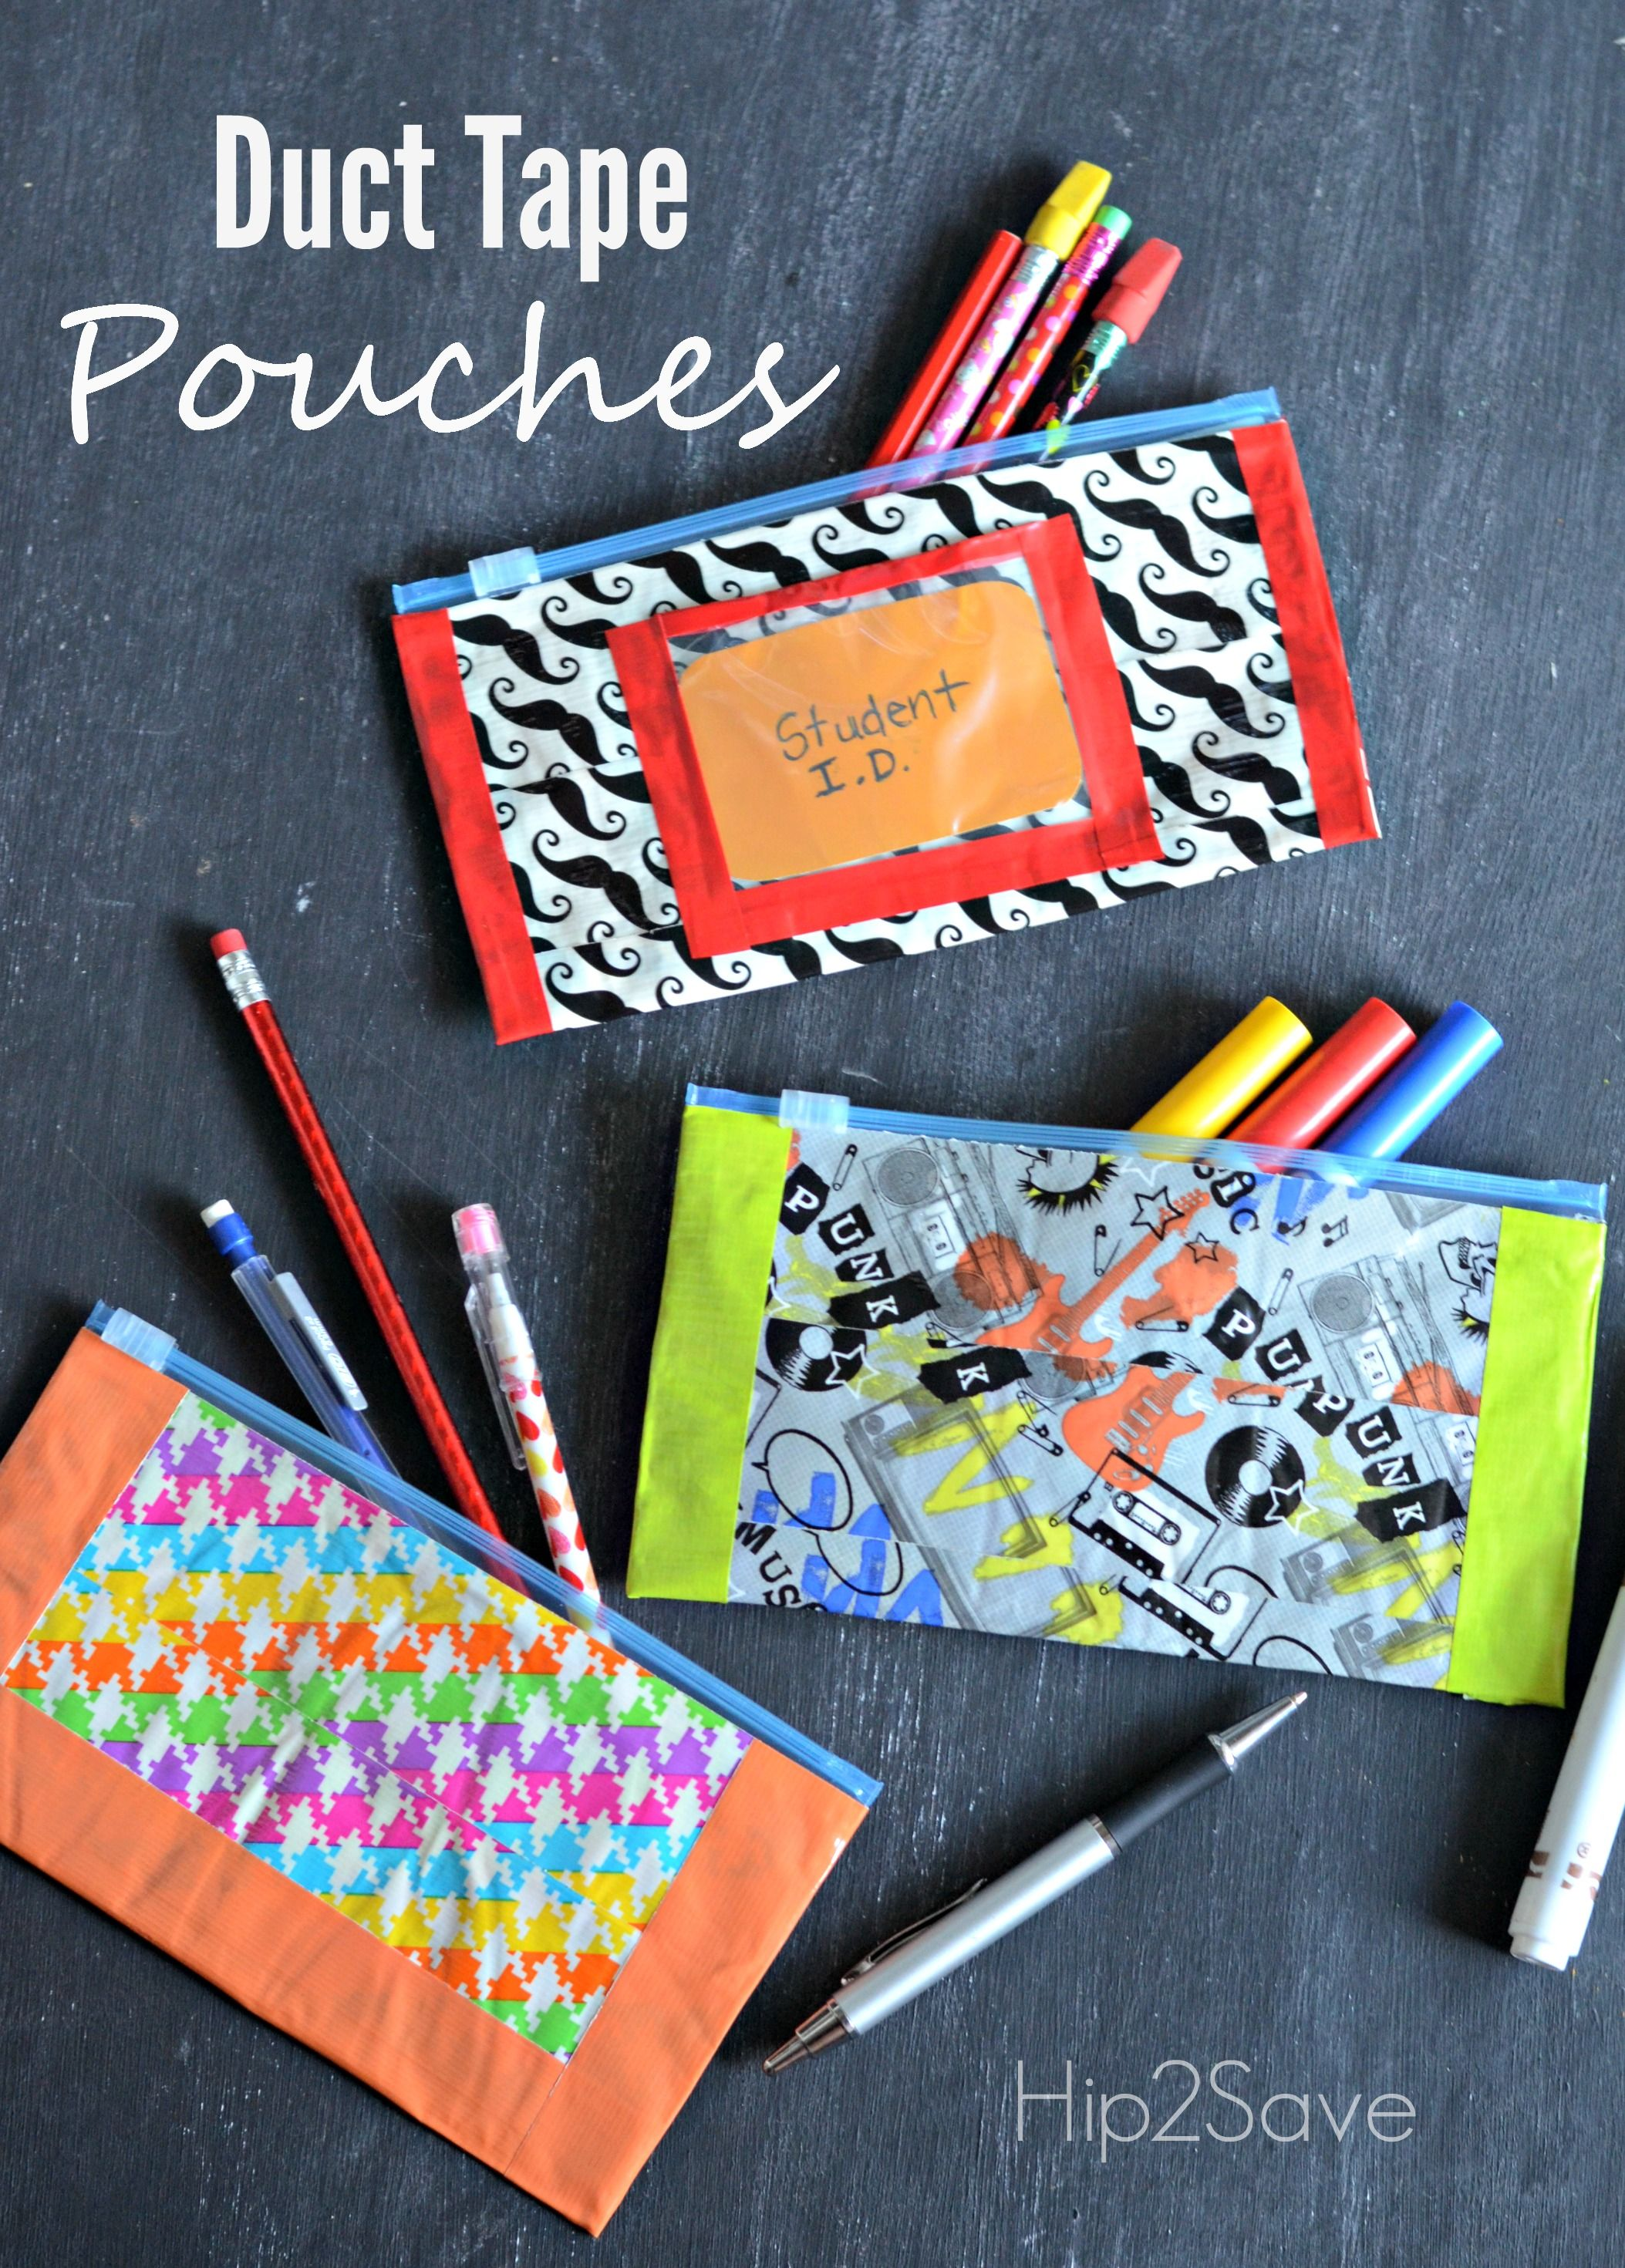 Duct tape crafts kits - Duct Tape Pencil Pouches Easy Back To School Craft By Hip2save